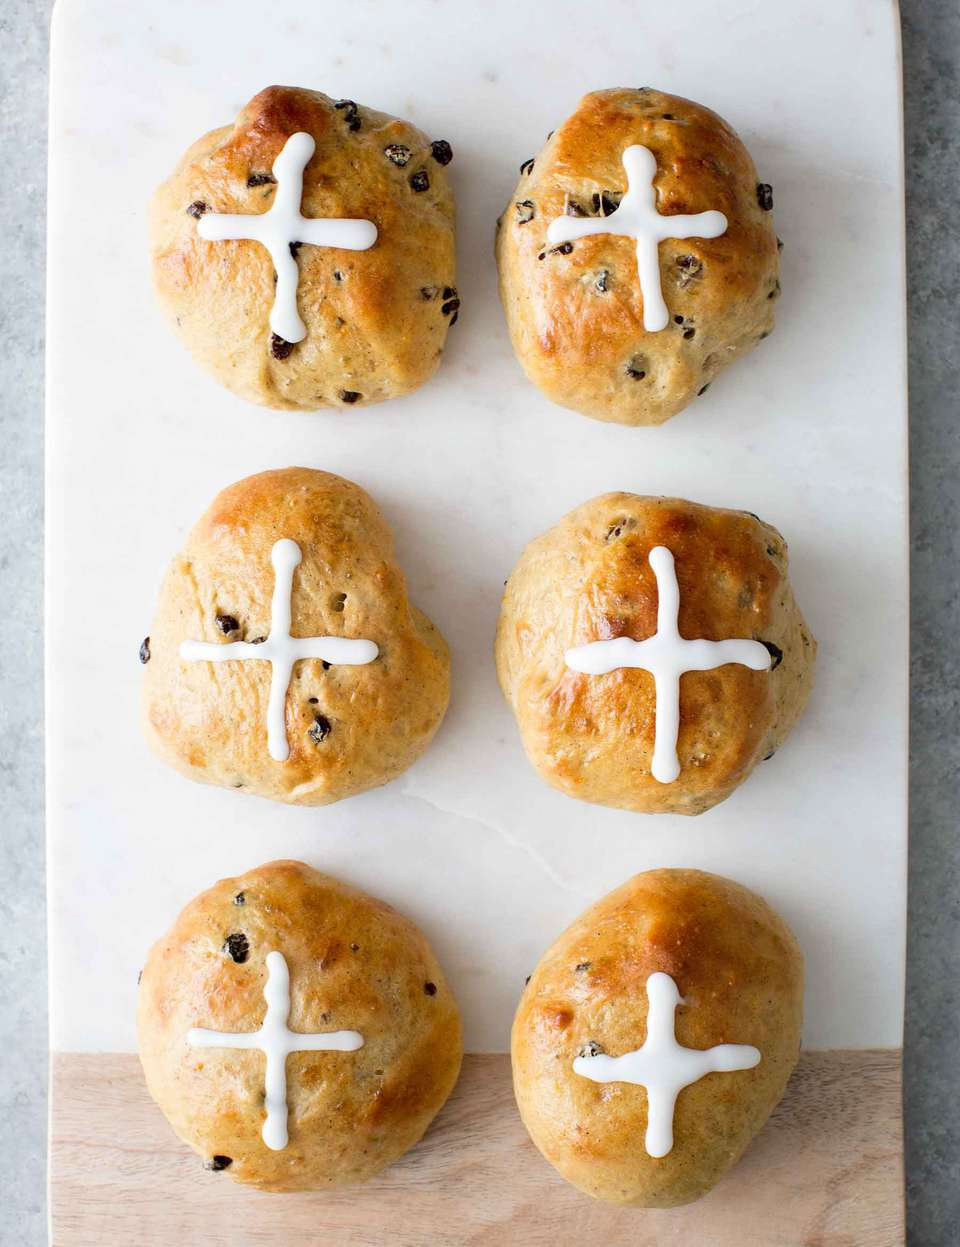 Easy Hot Cross Buns with sugar crosses on top on a board for serving